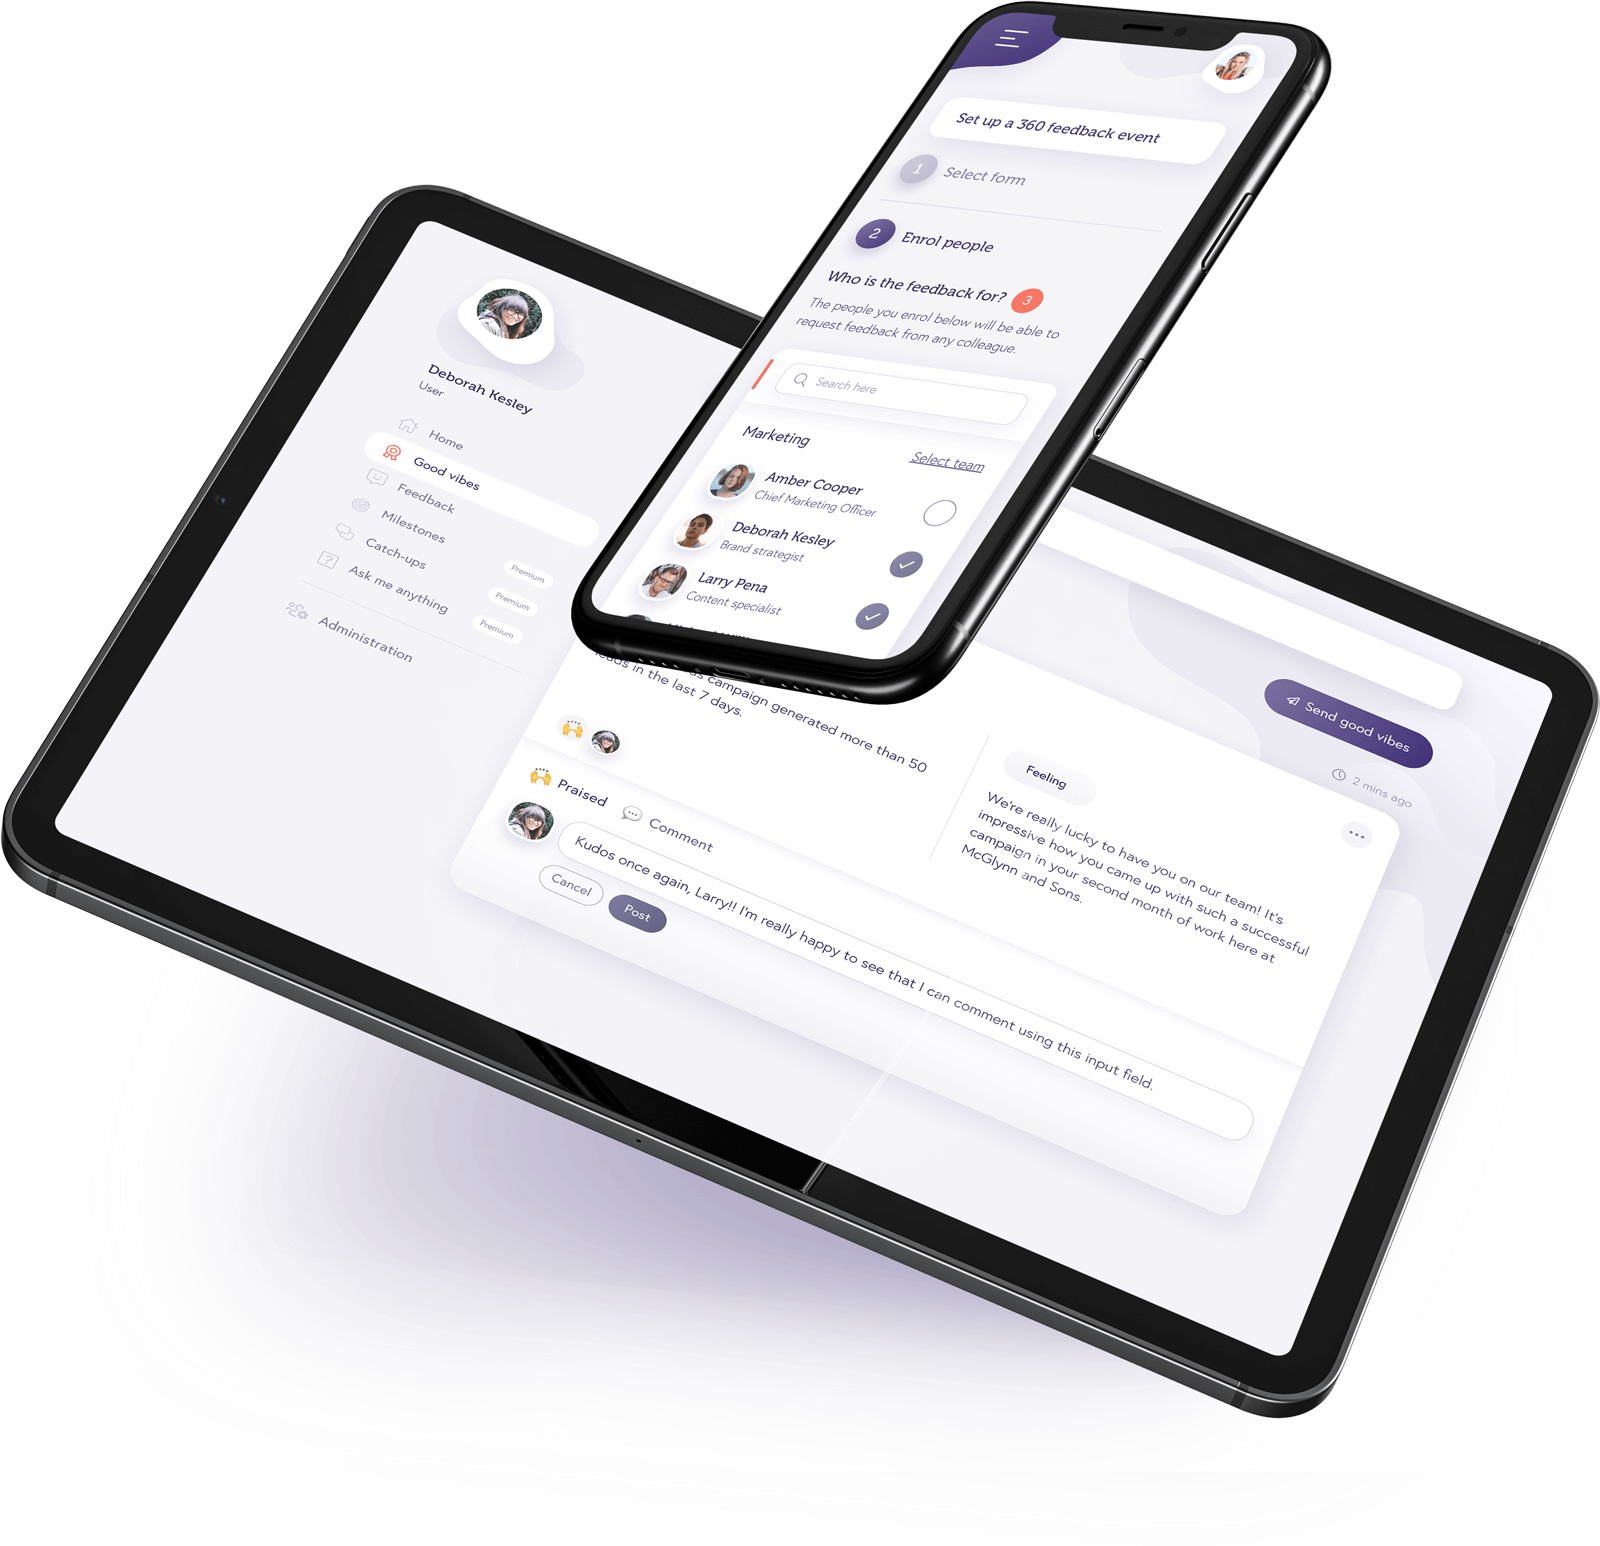 Howamigoing platform on phone and tablet